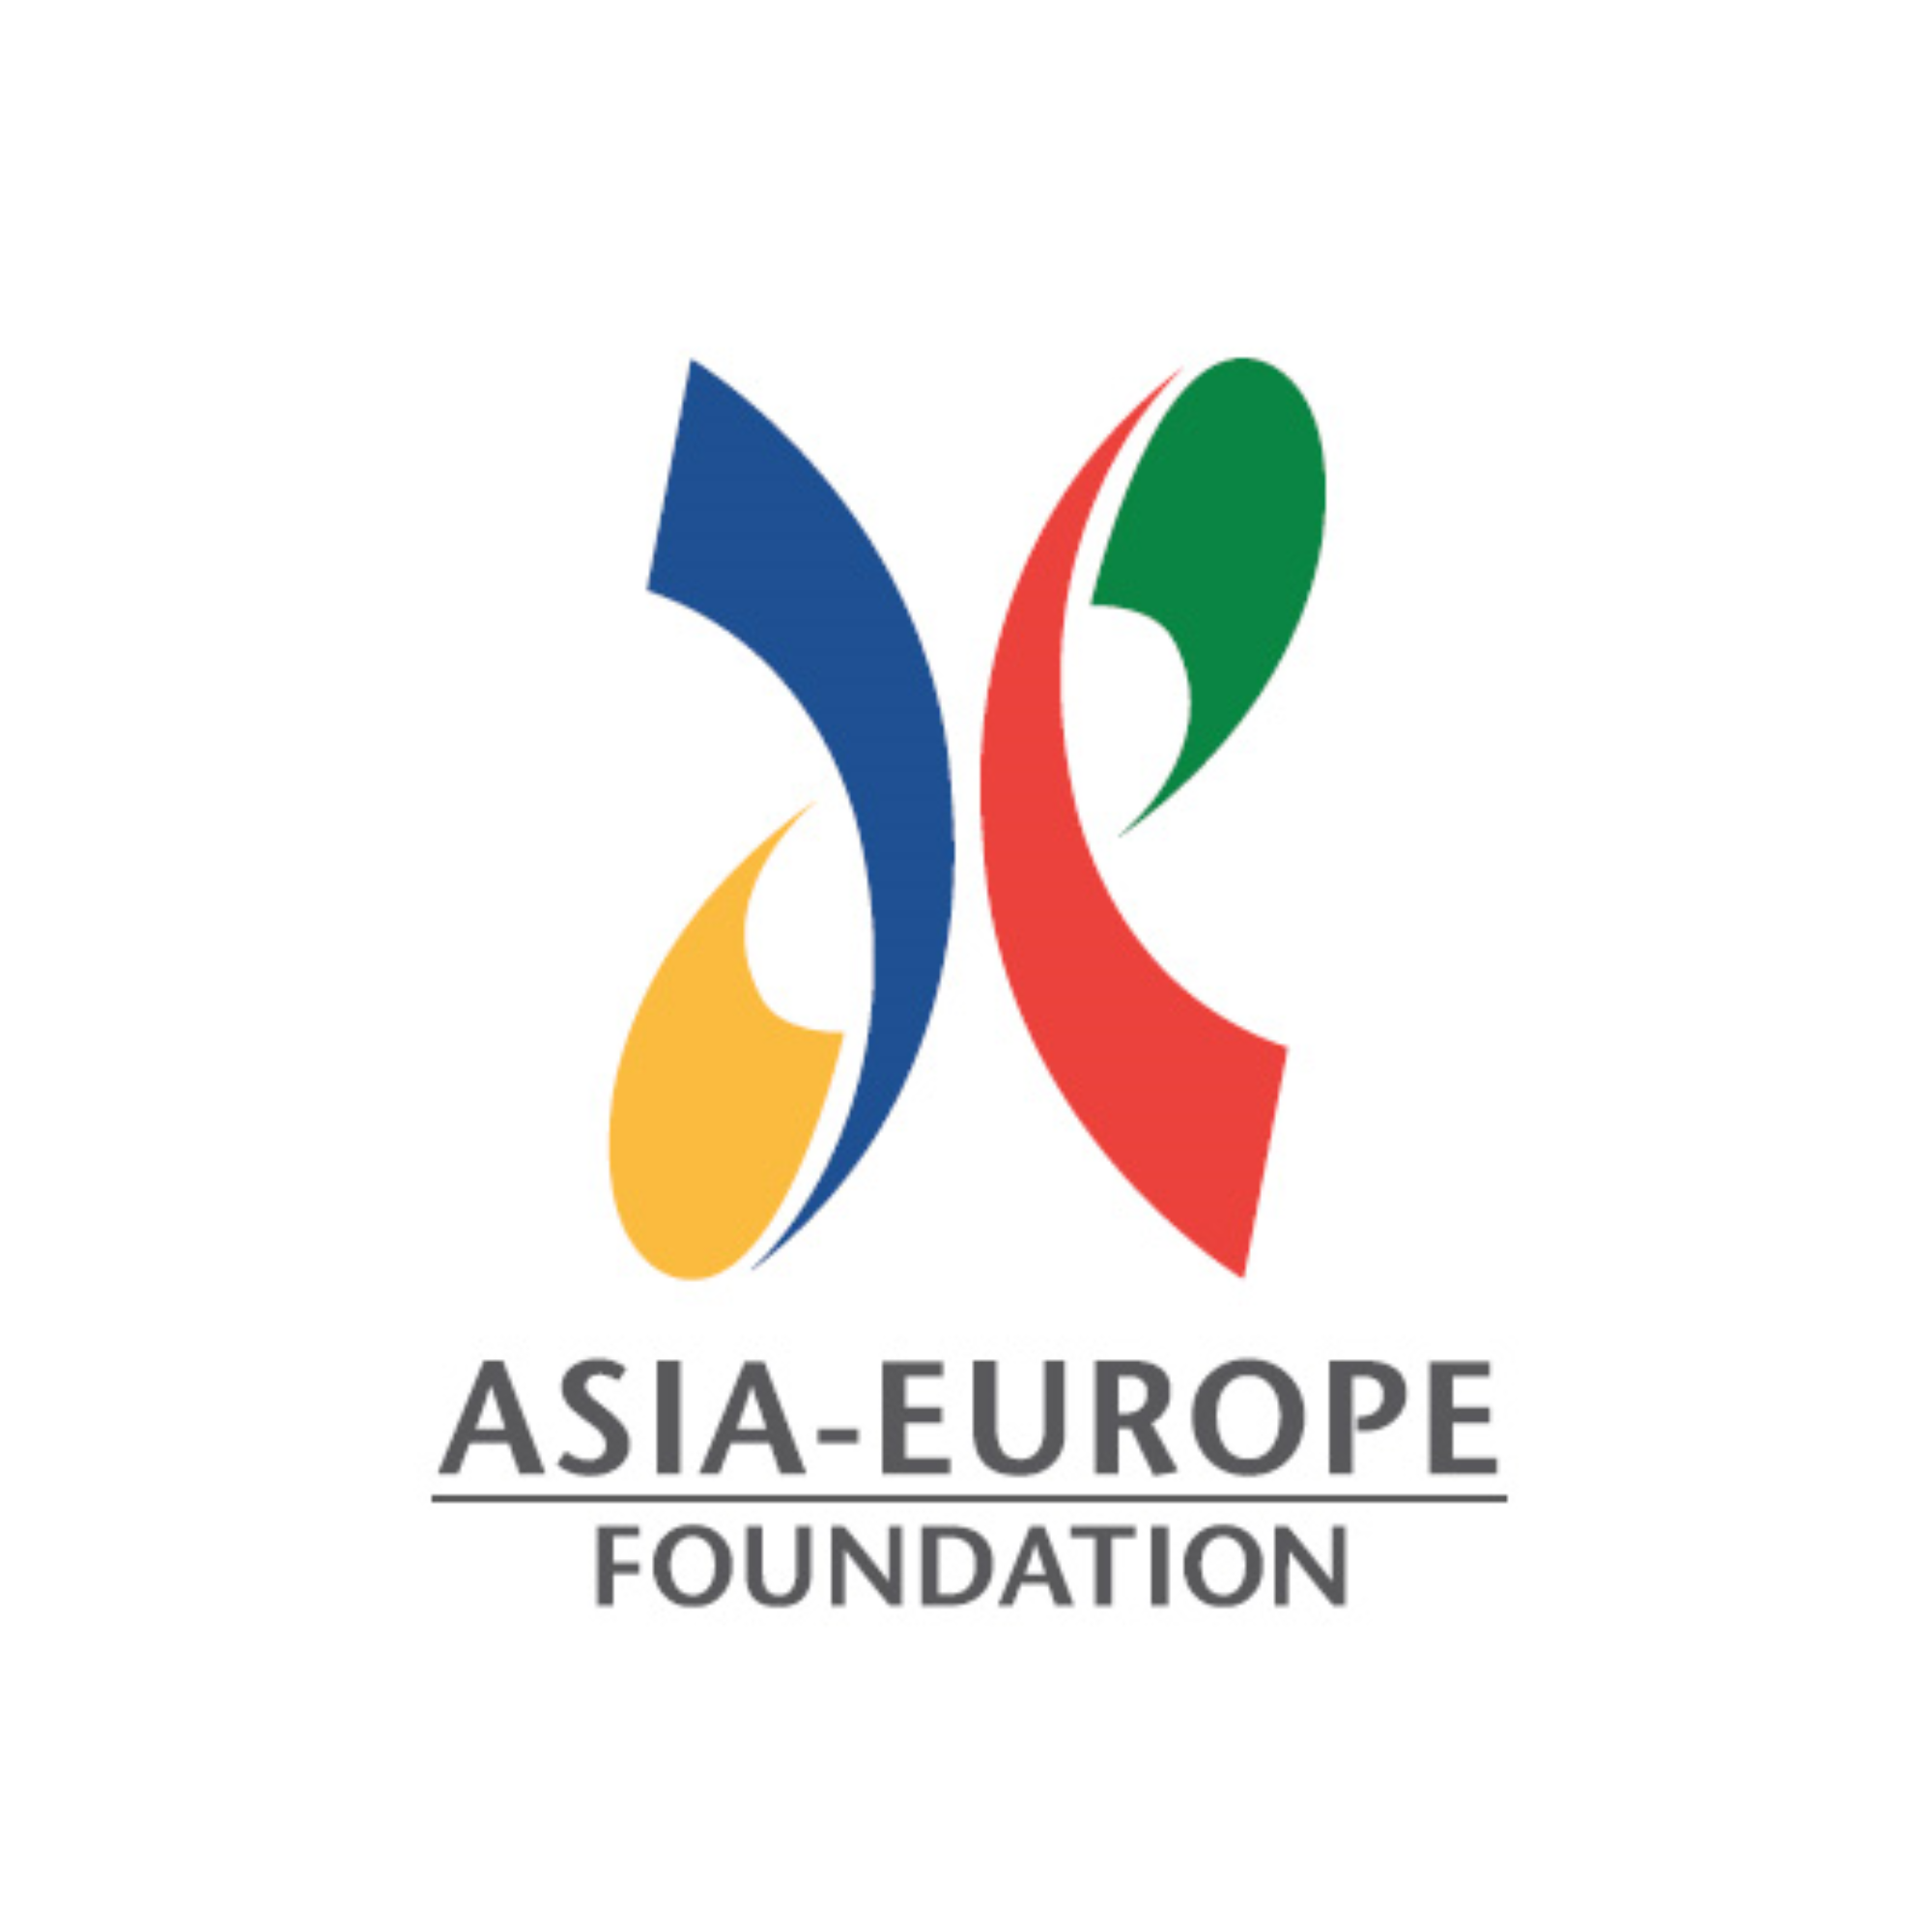 Asia - Europe Foundation